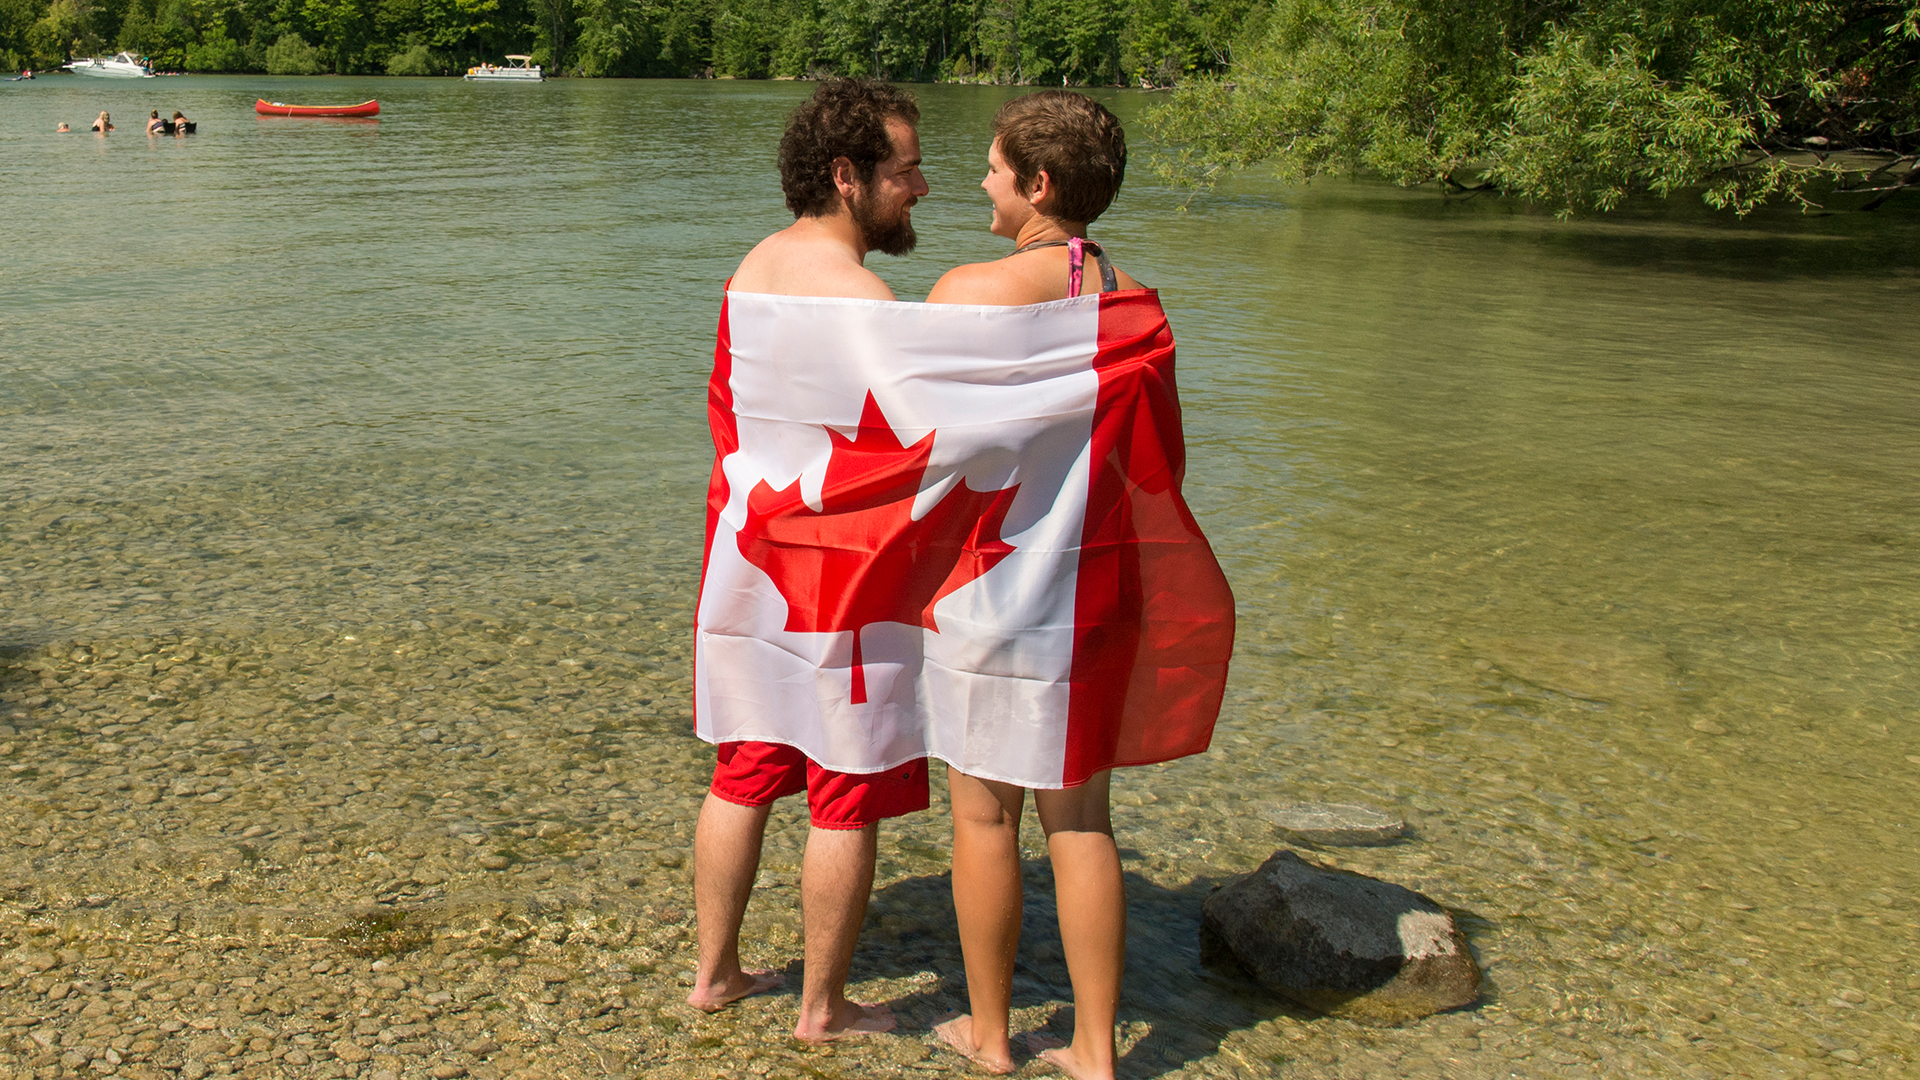 hawkestone - Celebrate Canada Day at these locations!